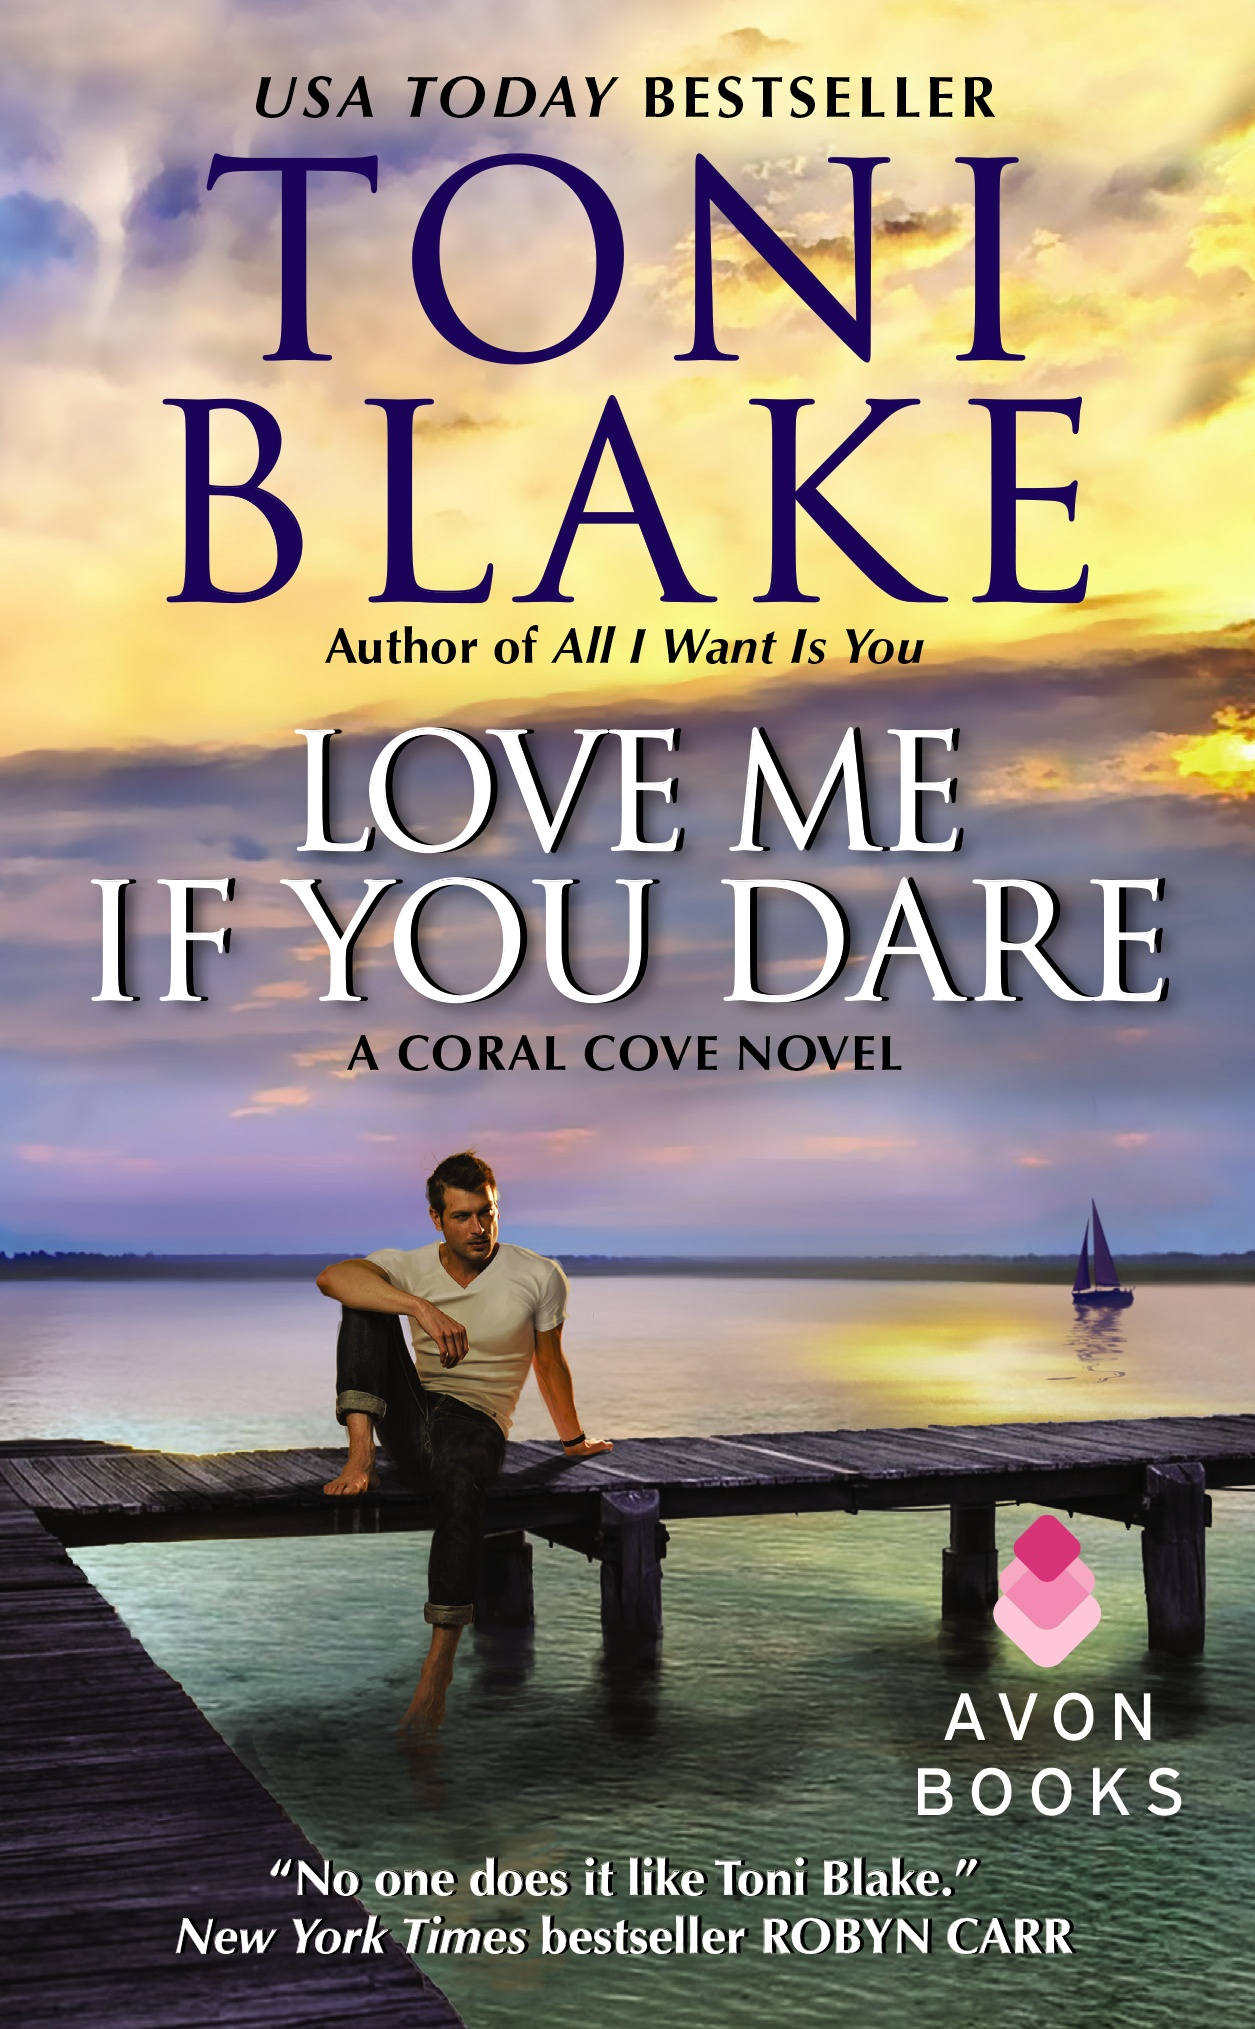 LOVE ME IF YOU DARE by Toni Blake: ARC Review